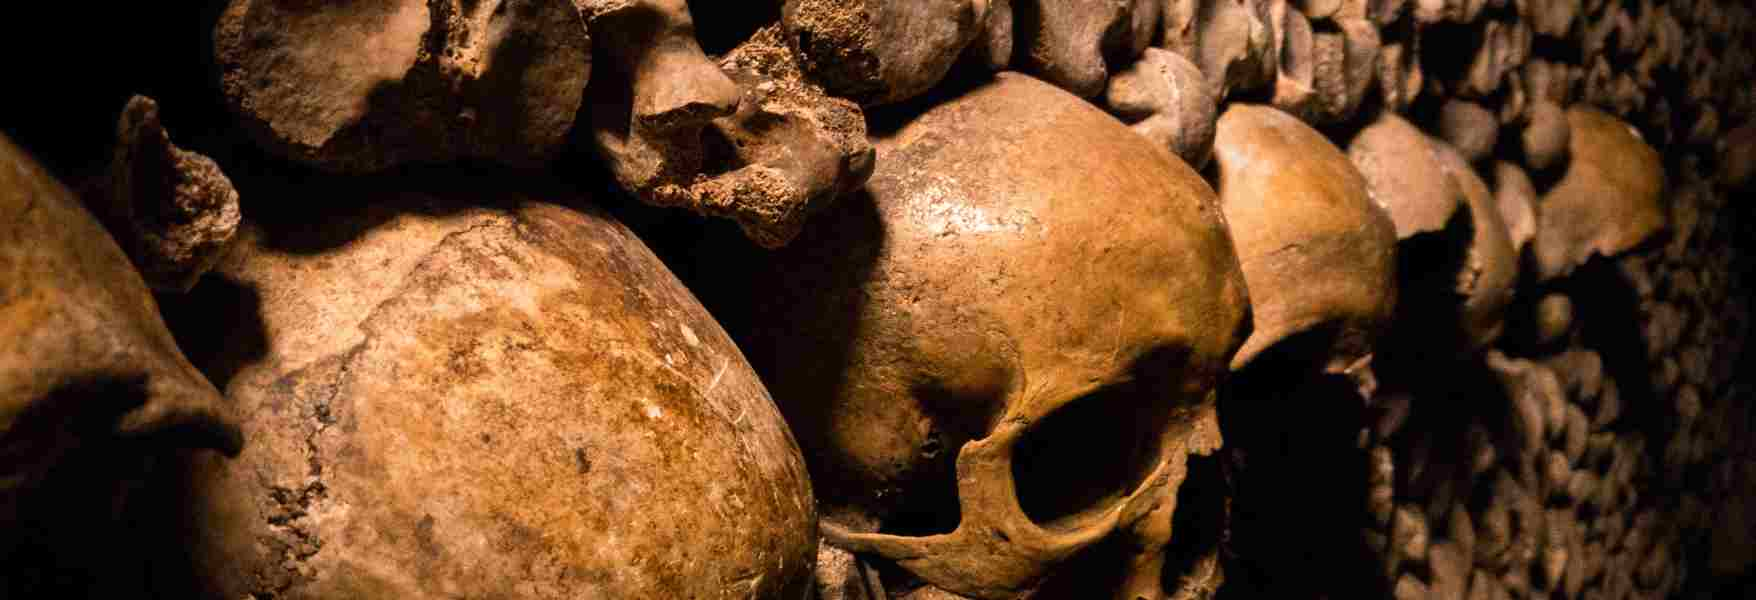 The Black Death: Turning Point and End of the Middle Ages? - OpenMind